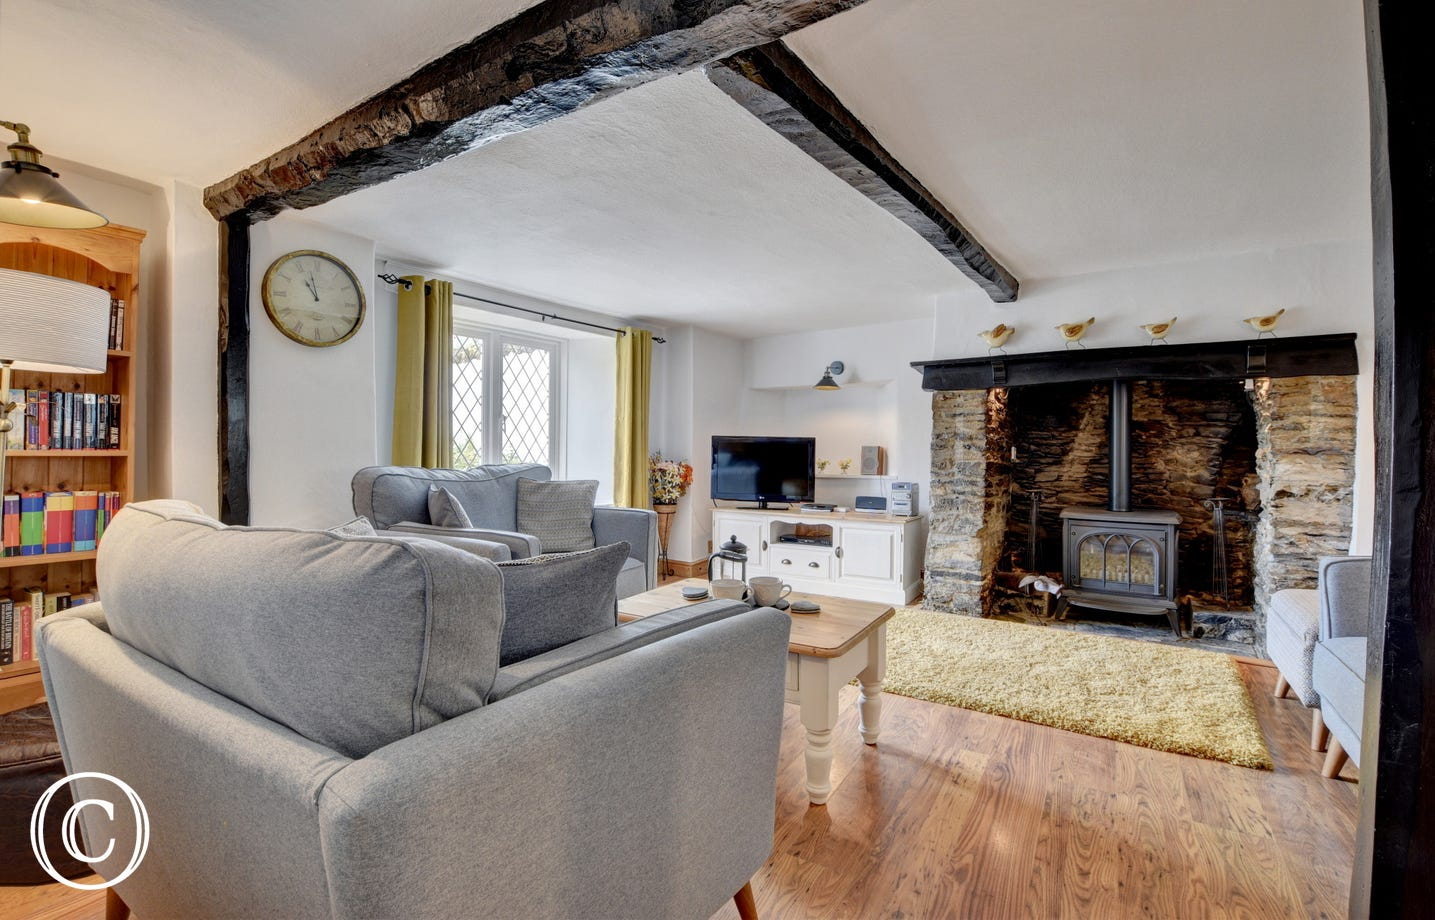 Comfortable seating and a lovely fire place in the sitting room